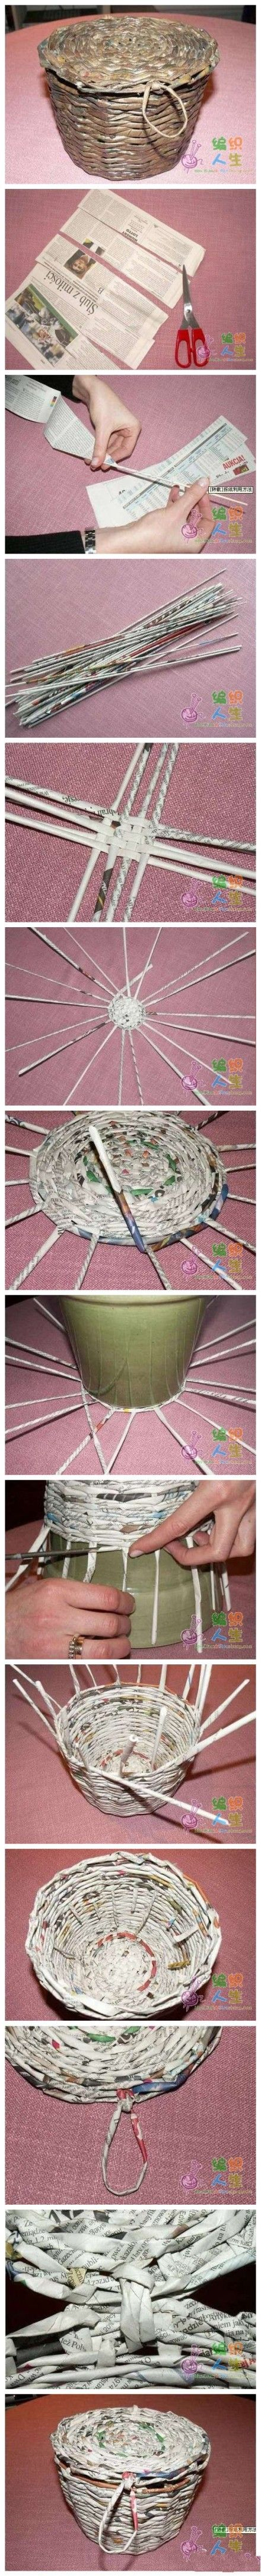 how to weave a Basket out of paper